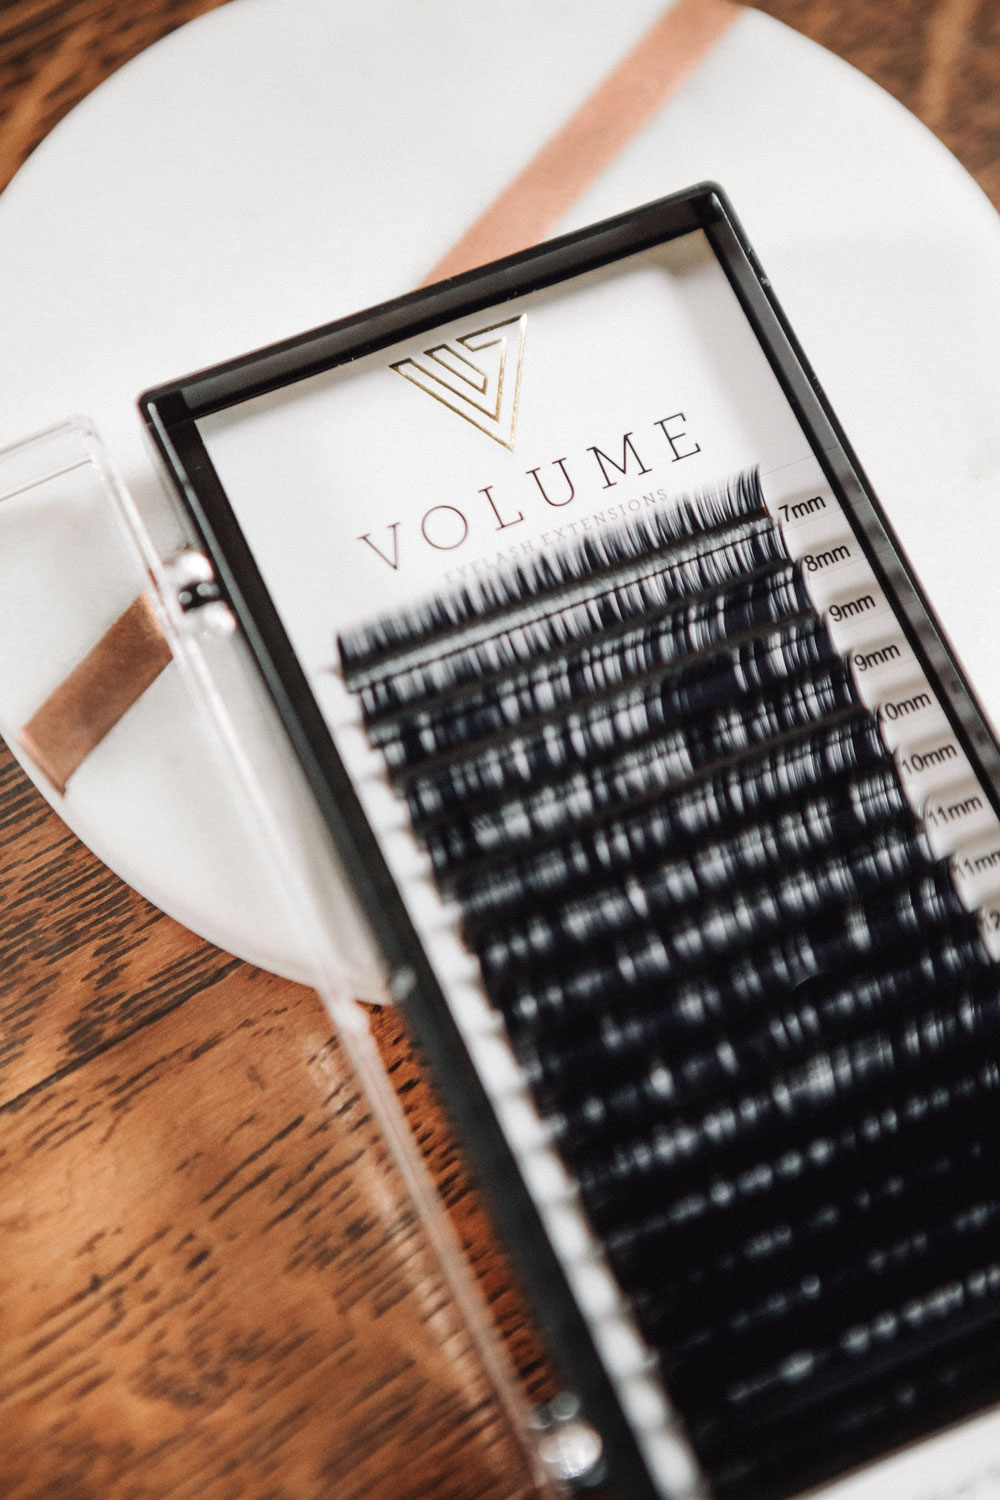 Volume Eyelash Extensions branding by Graphicsbyte aka Mark Boehly